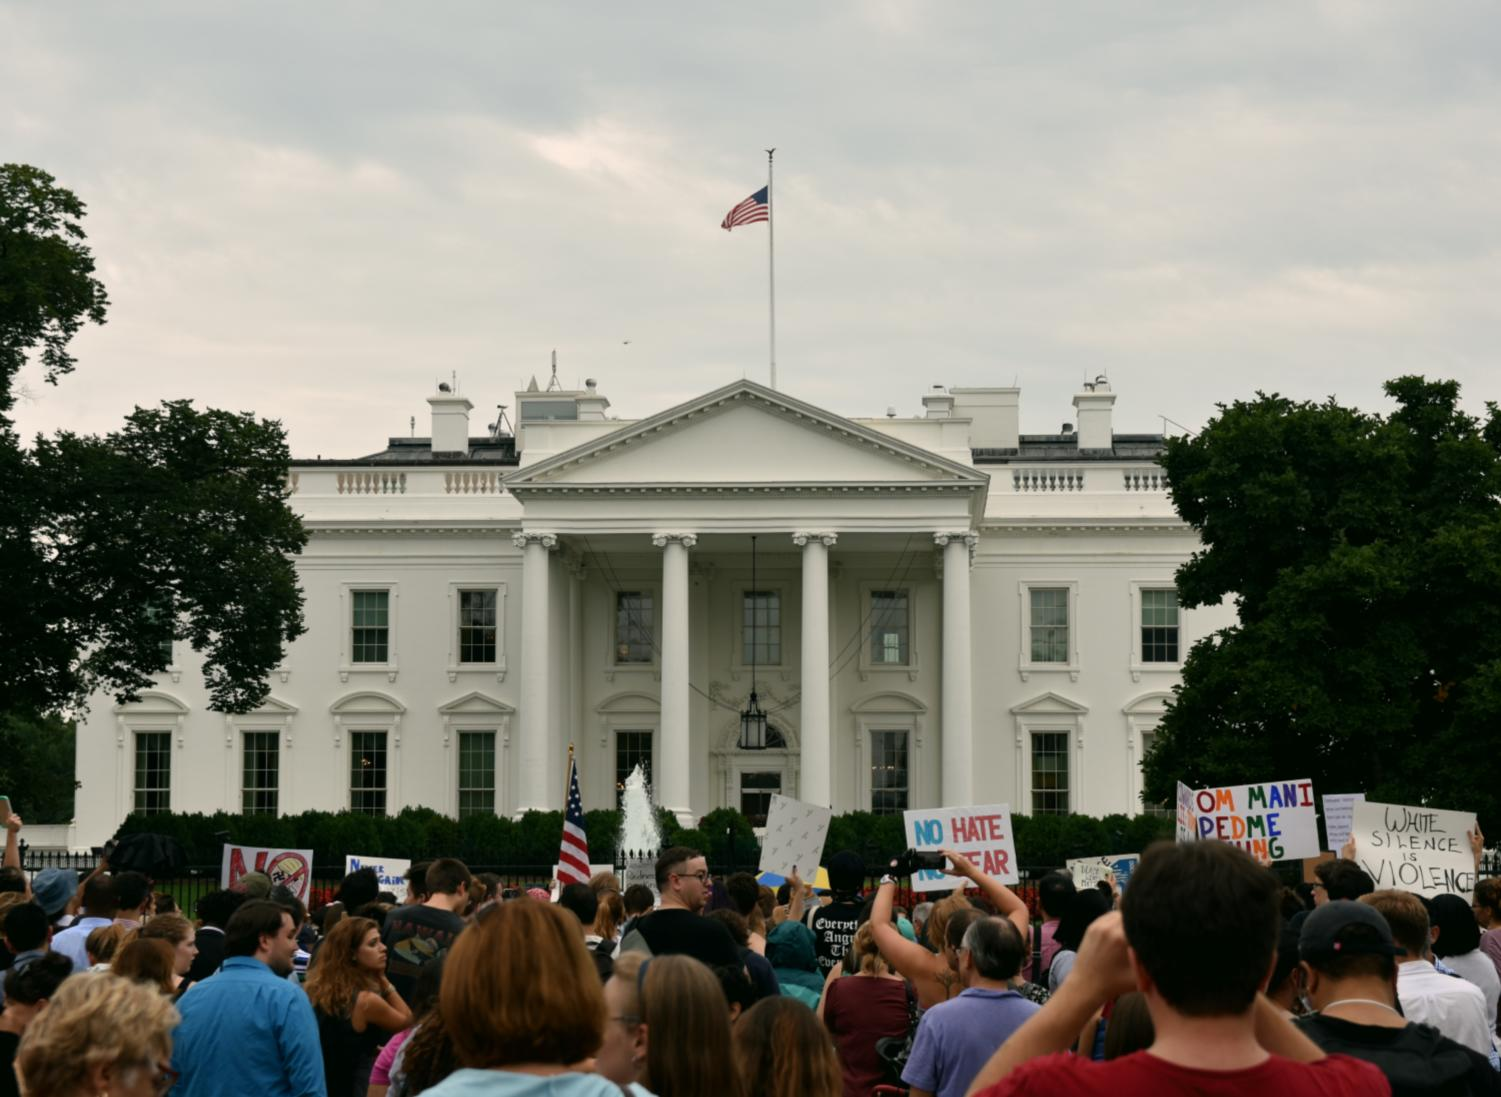 Protesting is a way for many Americans to voice their opinions about the government.